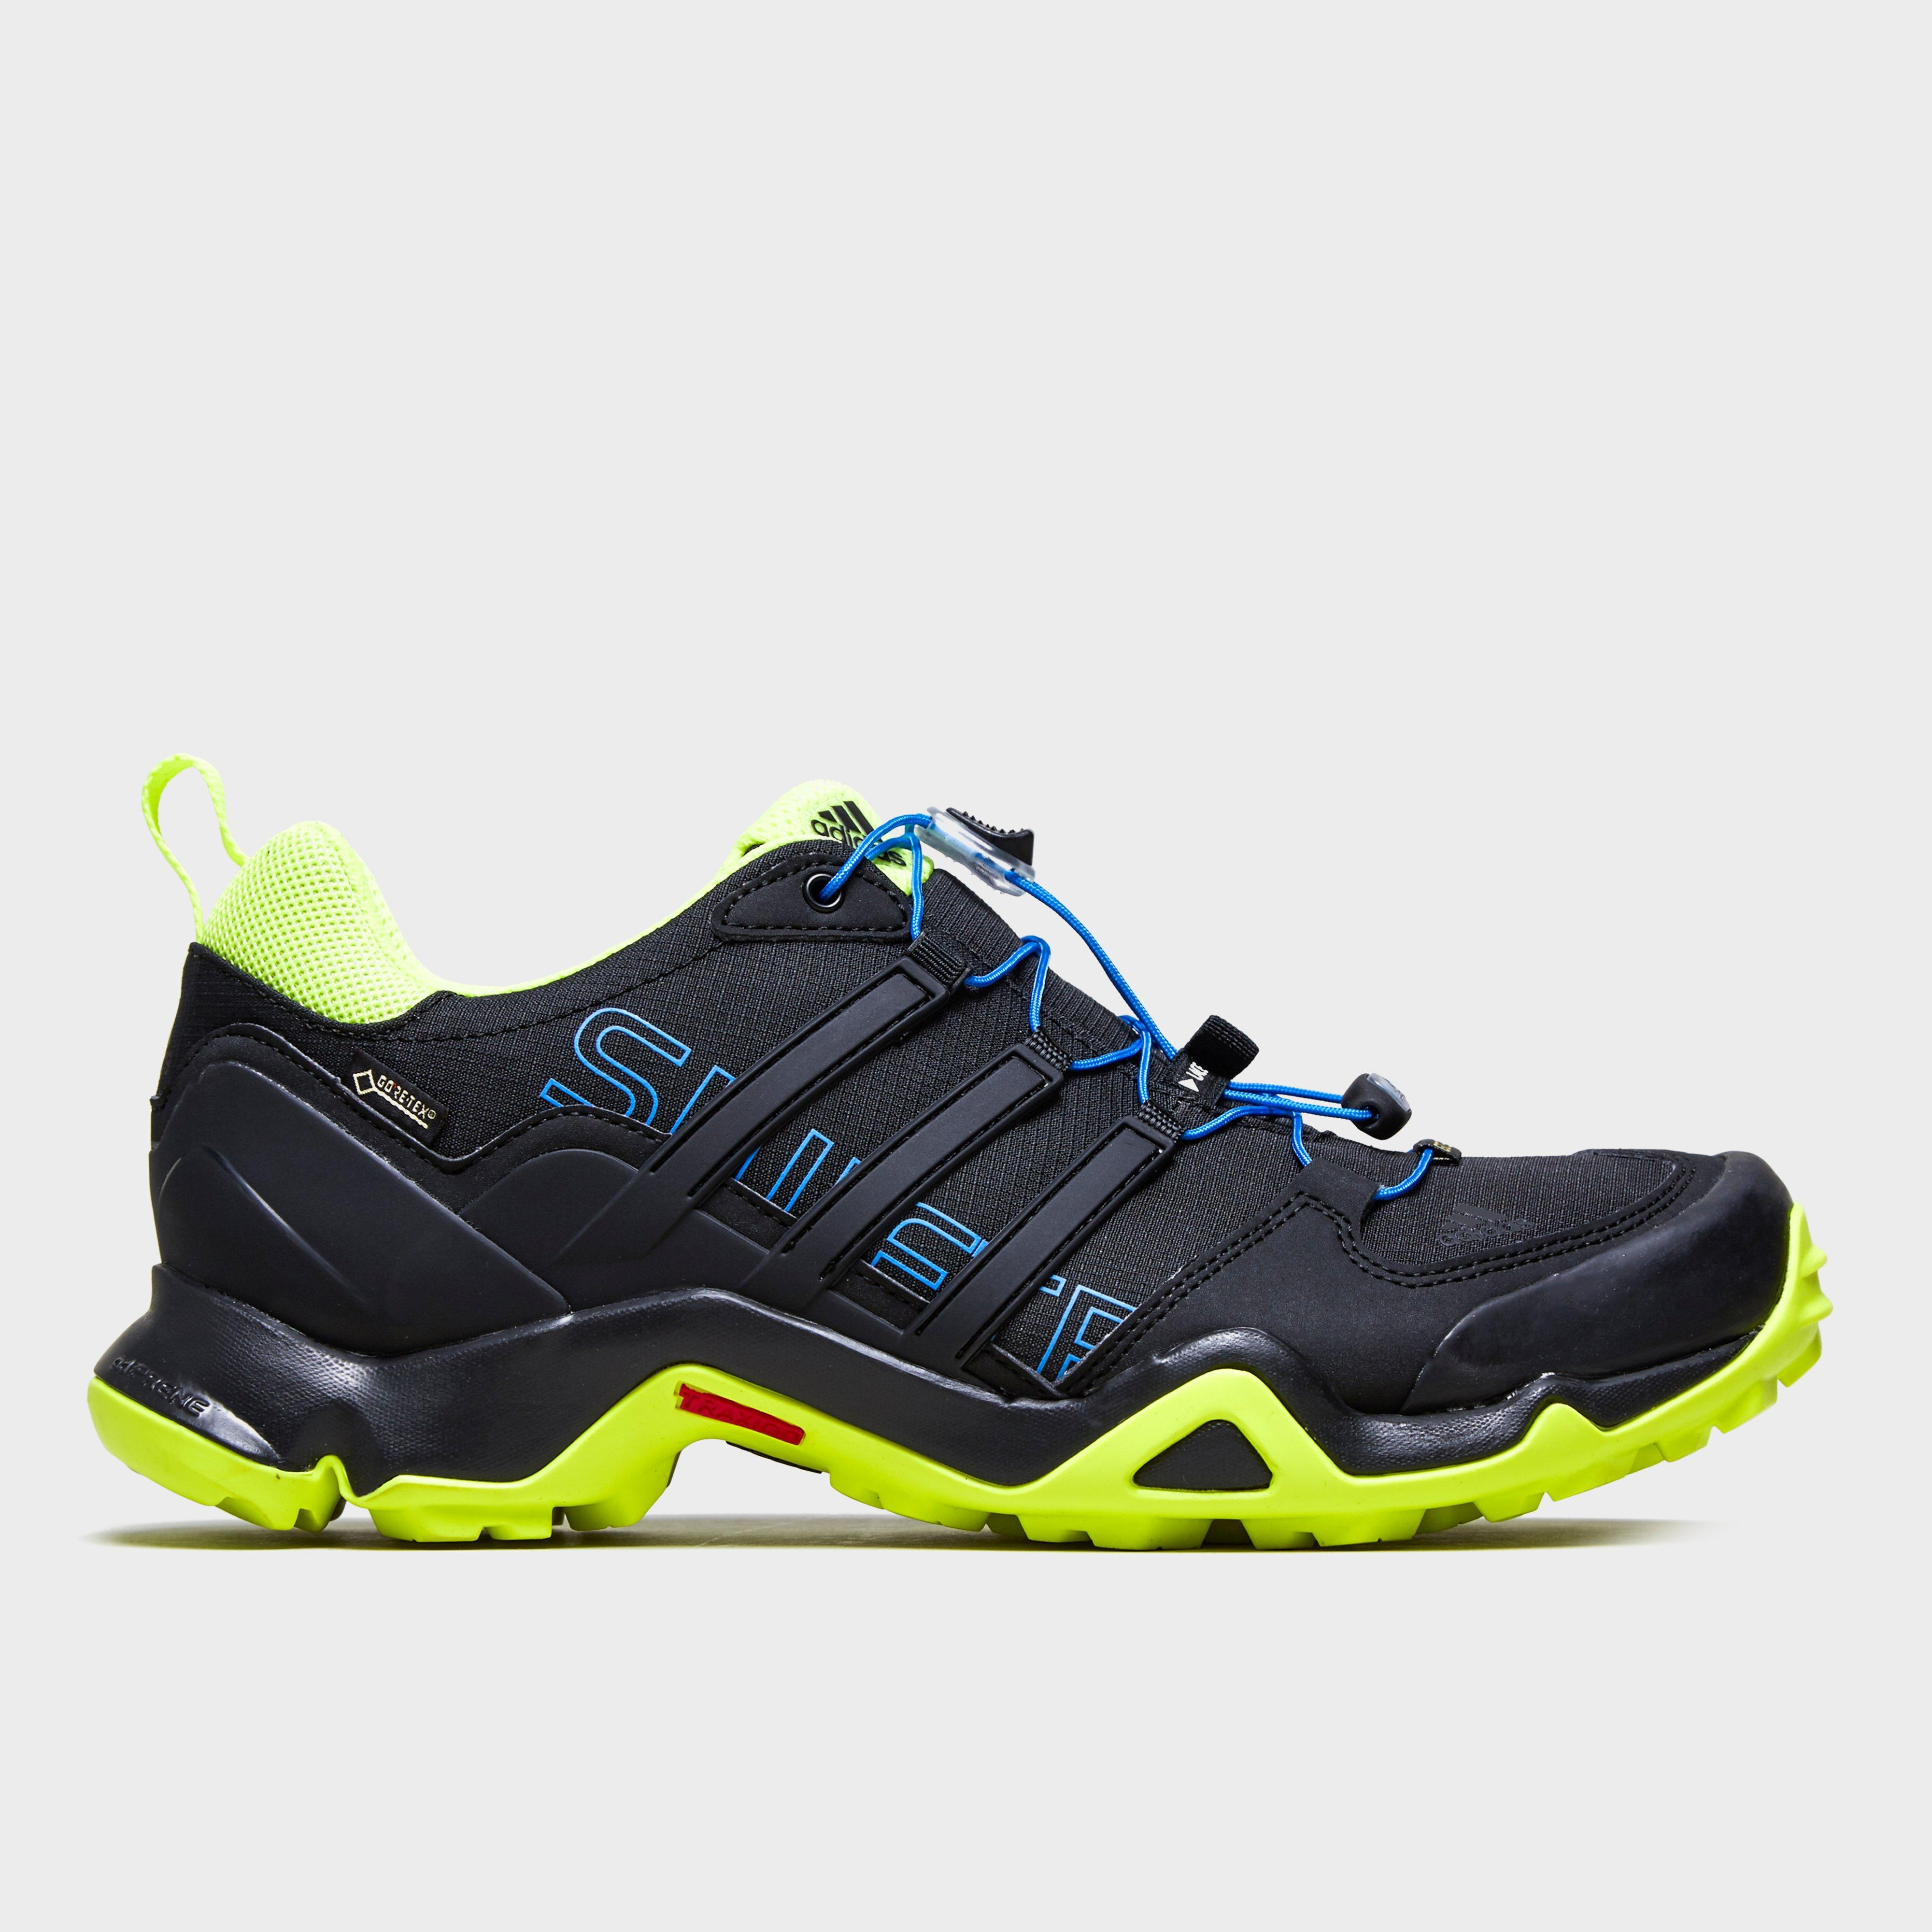 Adidas Mens Terrex Swift R GORETEX Shoes Black